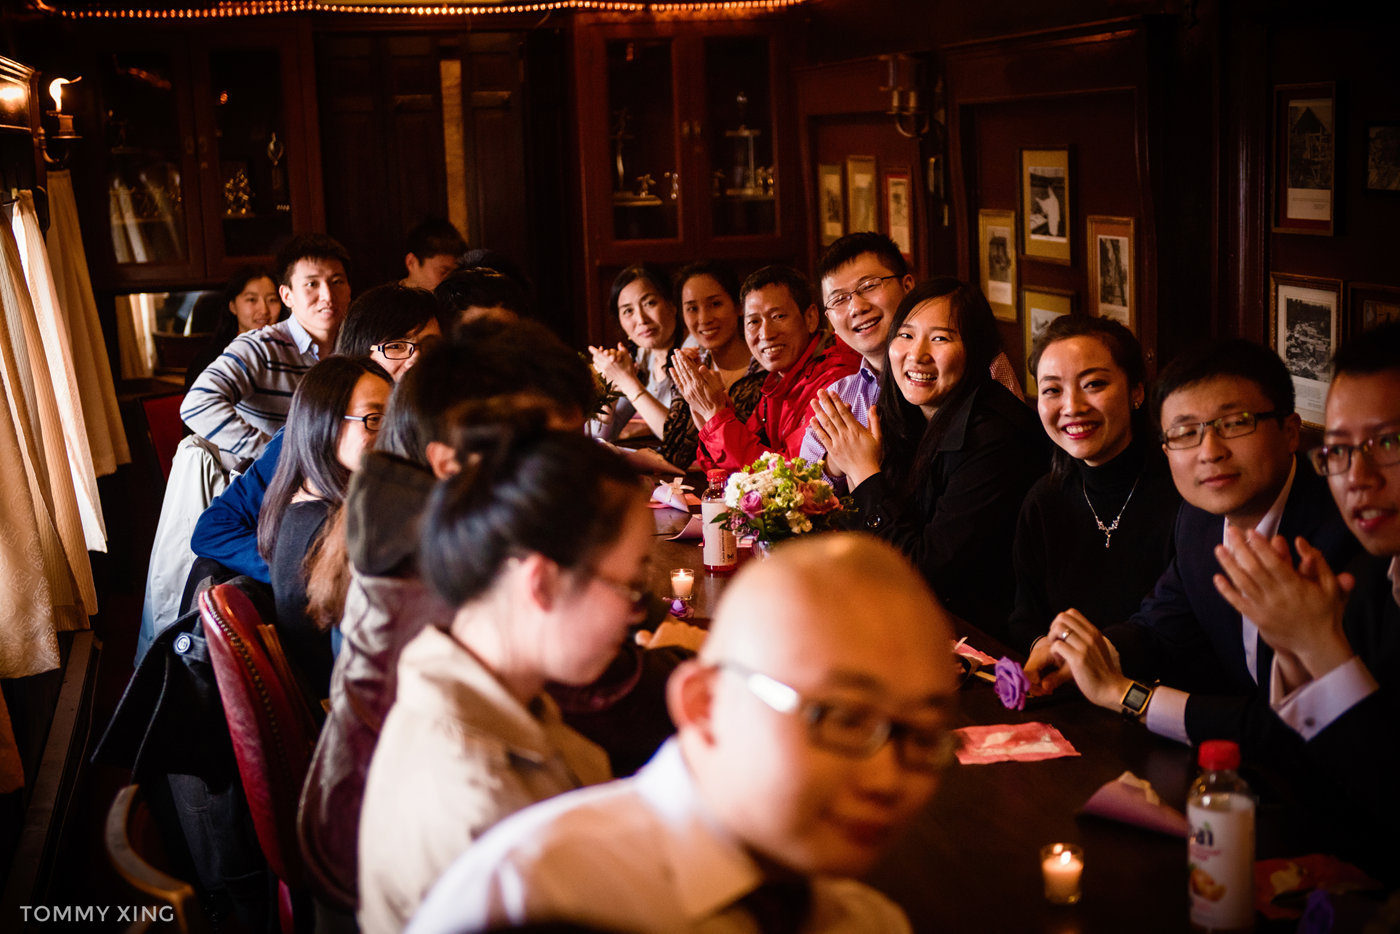 Seattle Wedding and pre wedding Los Angeles Tommy Xing Photography 西雅图洛杉矶旧金山婚礼婚纱照摄影师 161.jpg